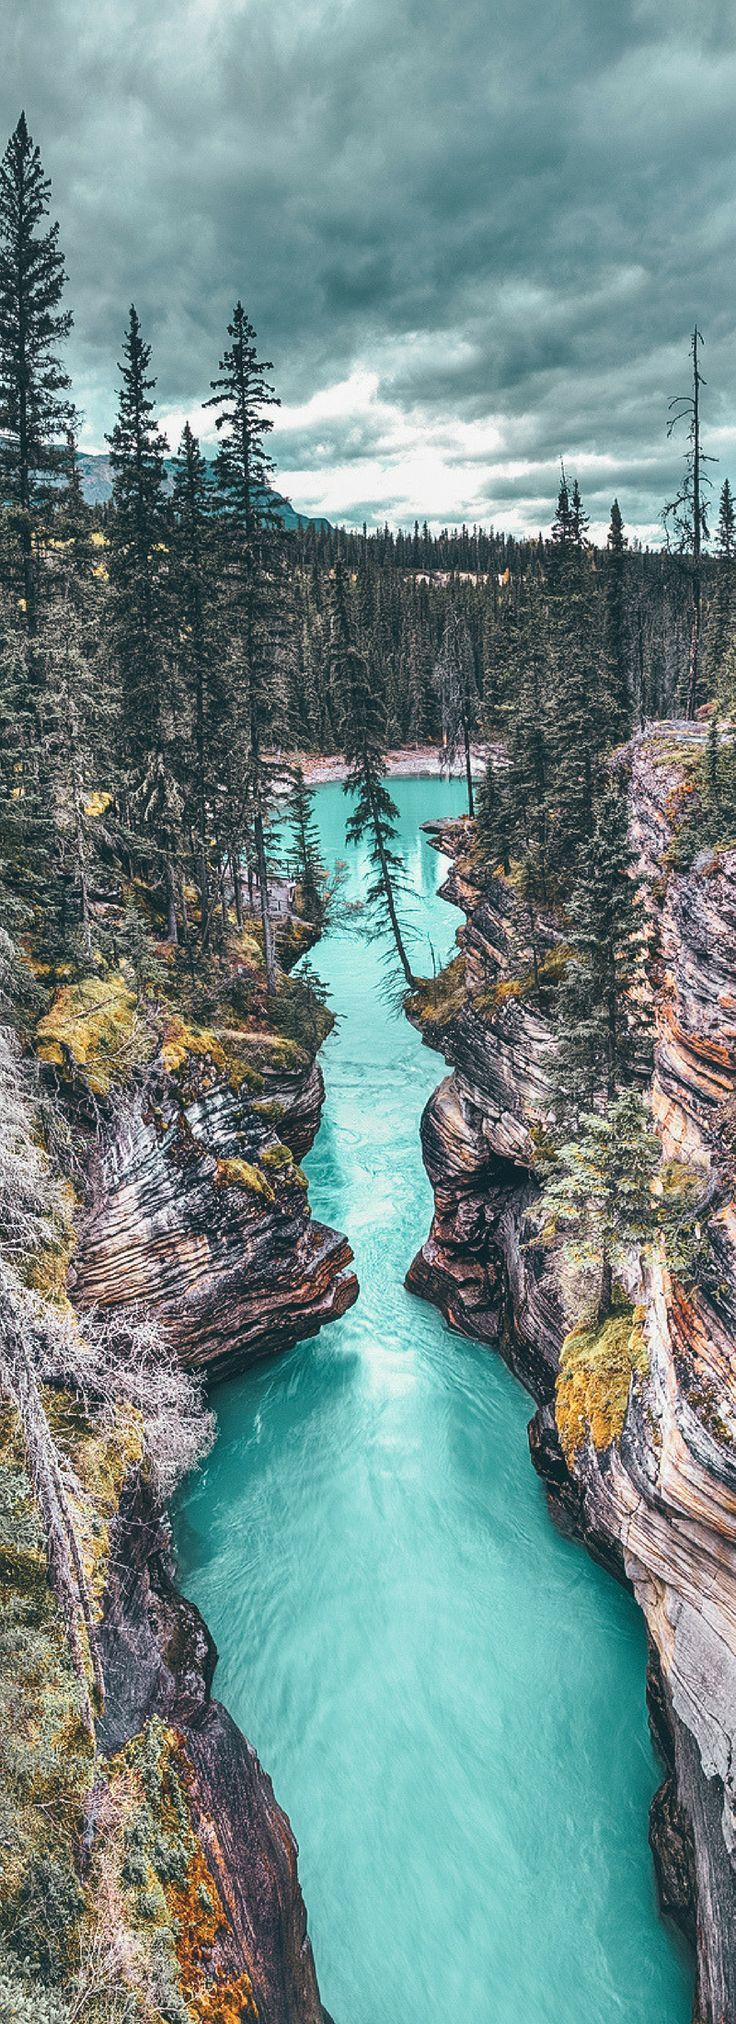 Athabasca Canyon in Jasper National Park! 10 Amazing Things To See And Do In Alberta, Canada! Including the Columbia Icefields | Banff National Park | Lake Abraham | Lake Louise | Peyto Lake and so much more! #avenlylanetravel #canada #alberta